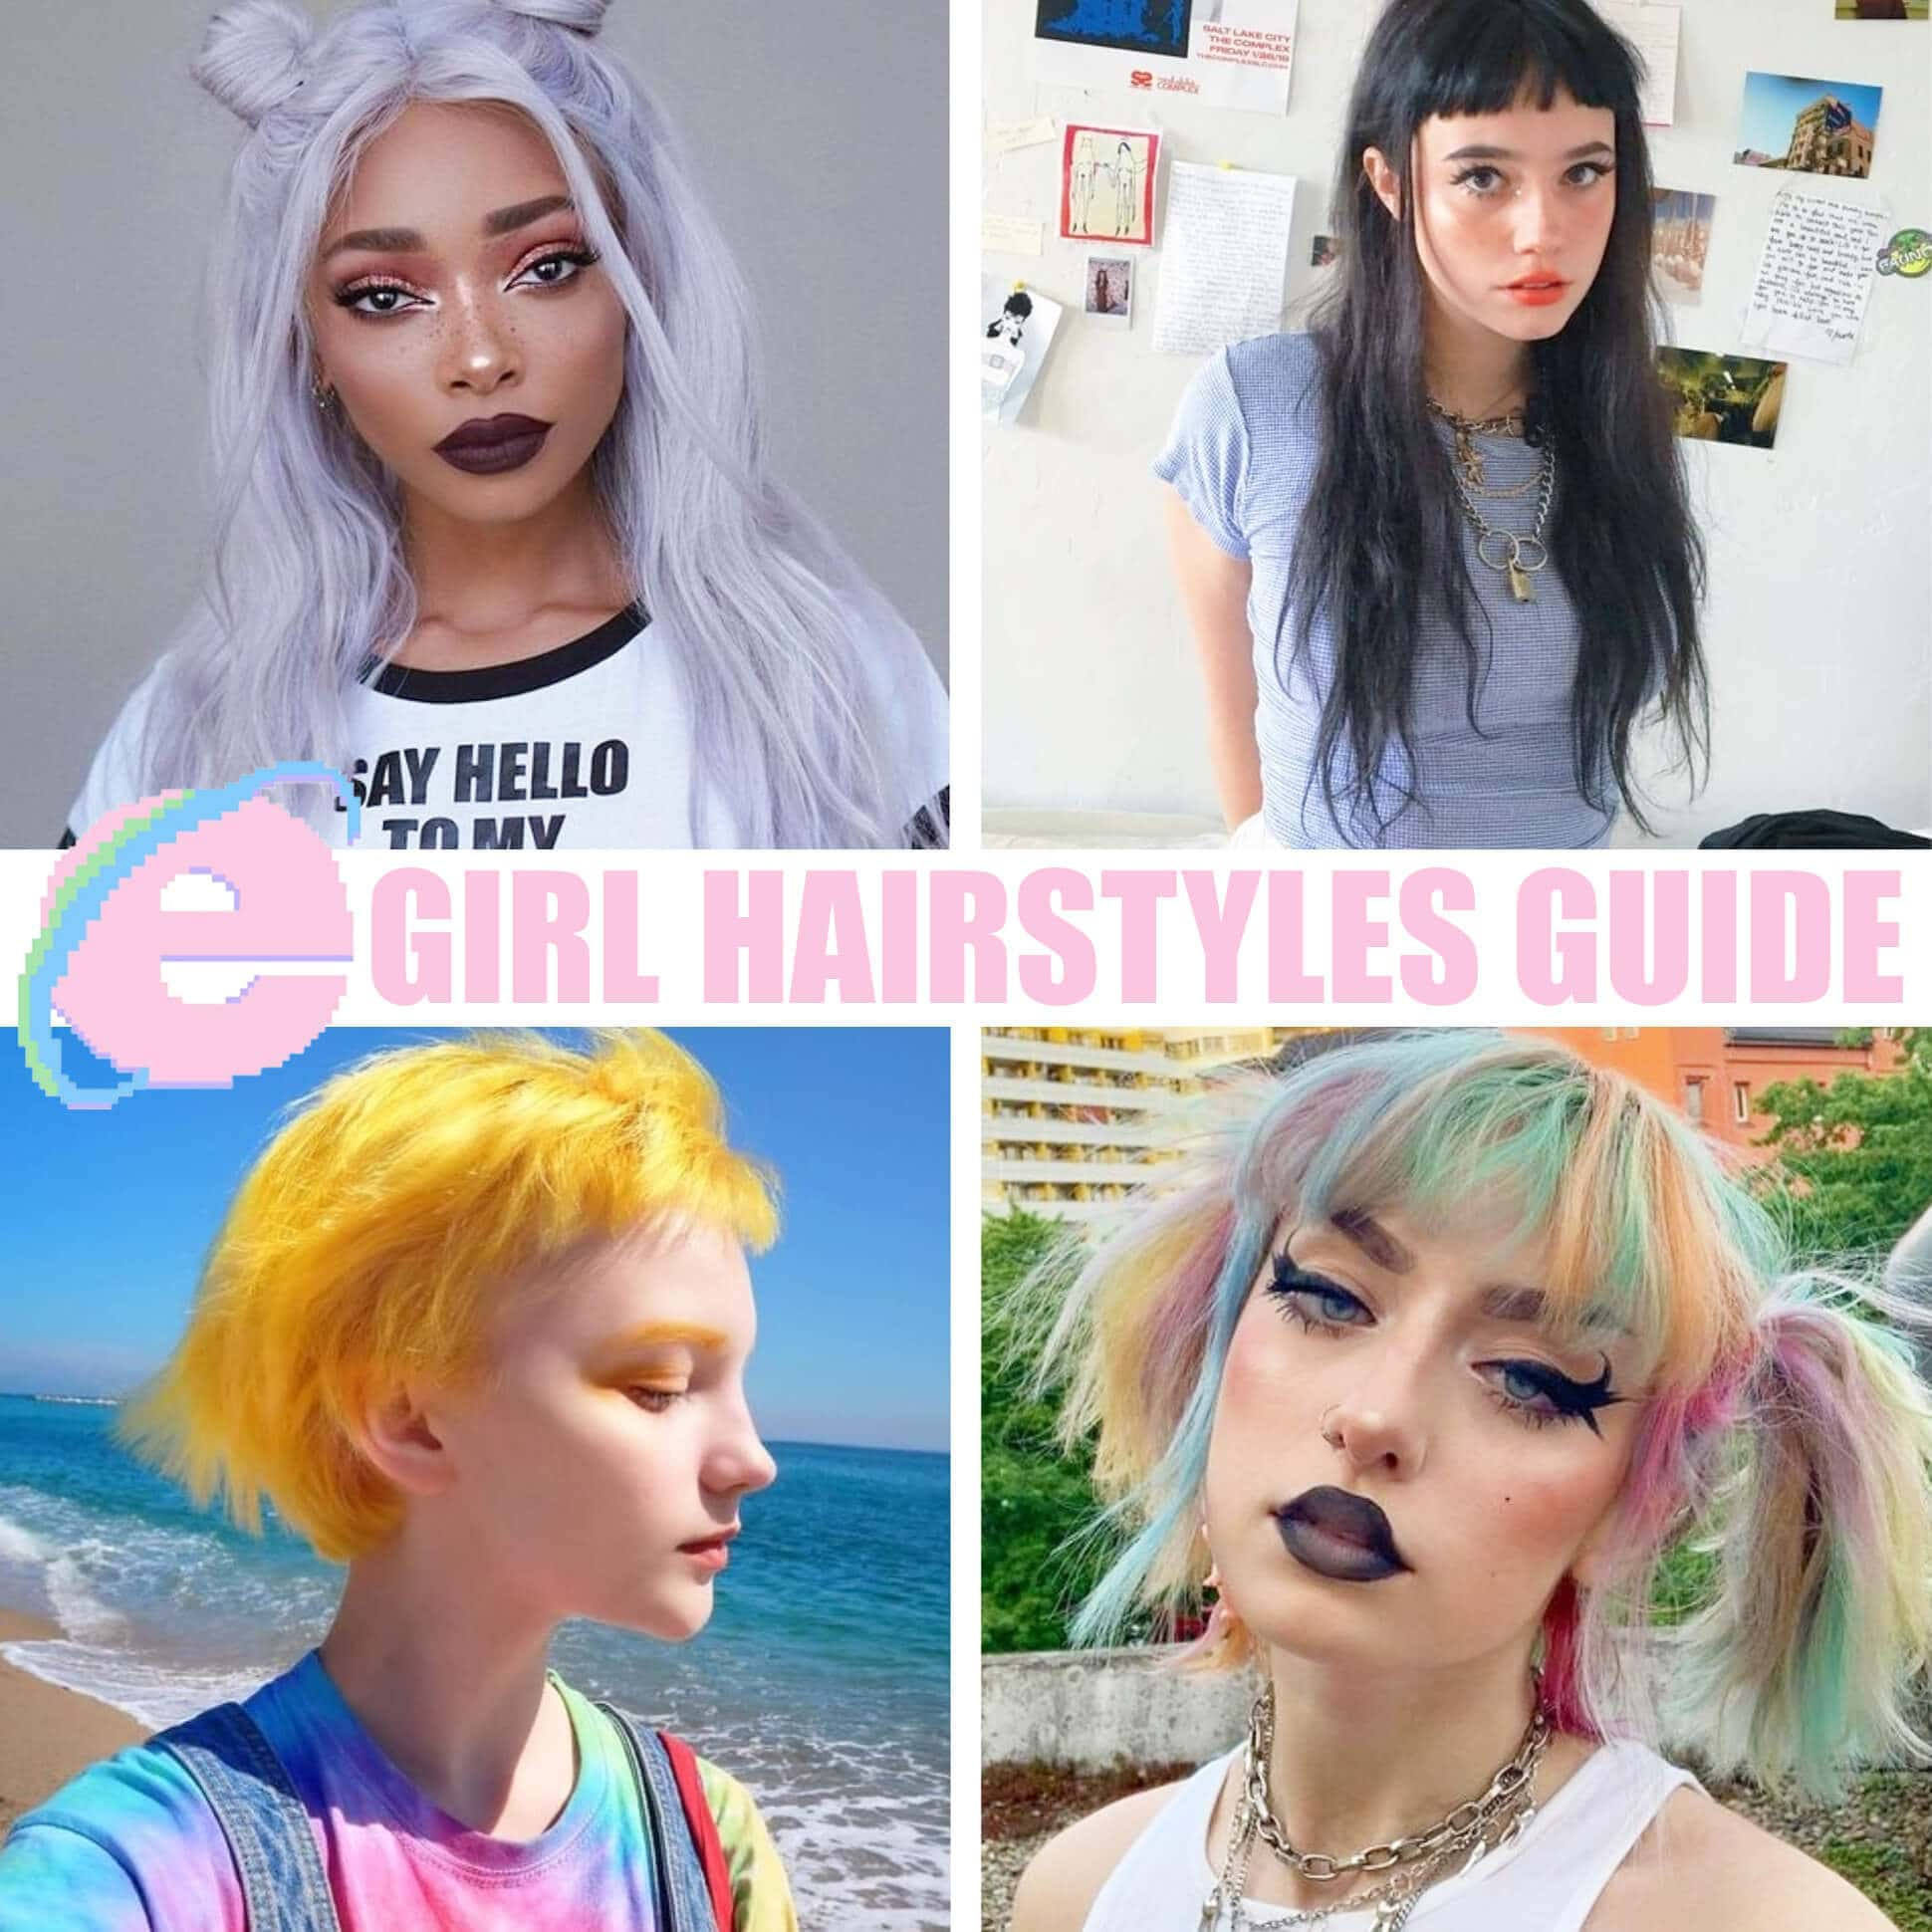 Best EGirl Hairstyles Guide Hair Coloring and EGirl Wigs Orezoria Blog Aesthetic Hairstyles Thumbnail Square 3